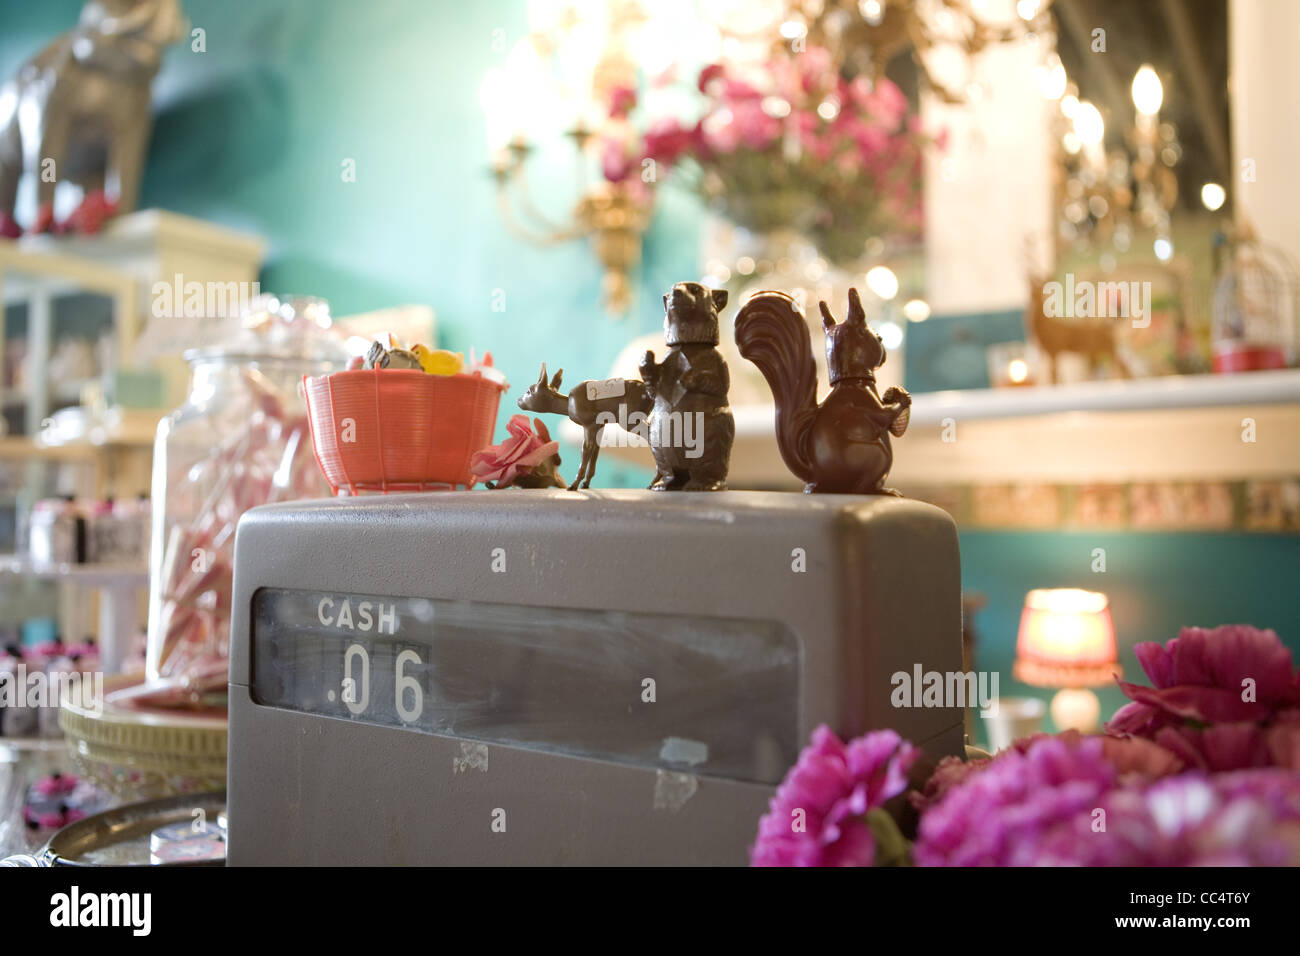 Plastic Figurines on an Old Cash Register - Stock Image